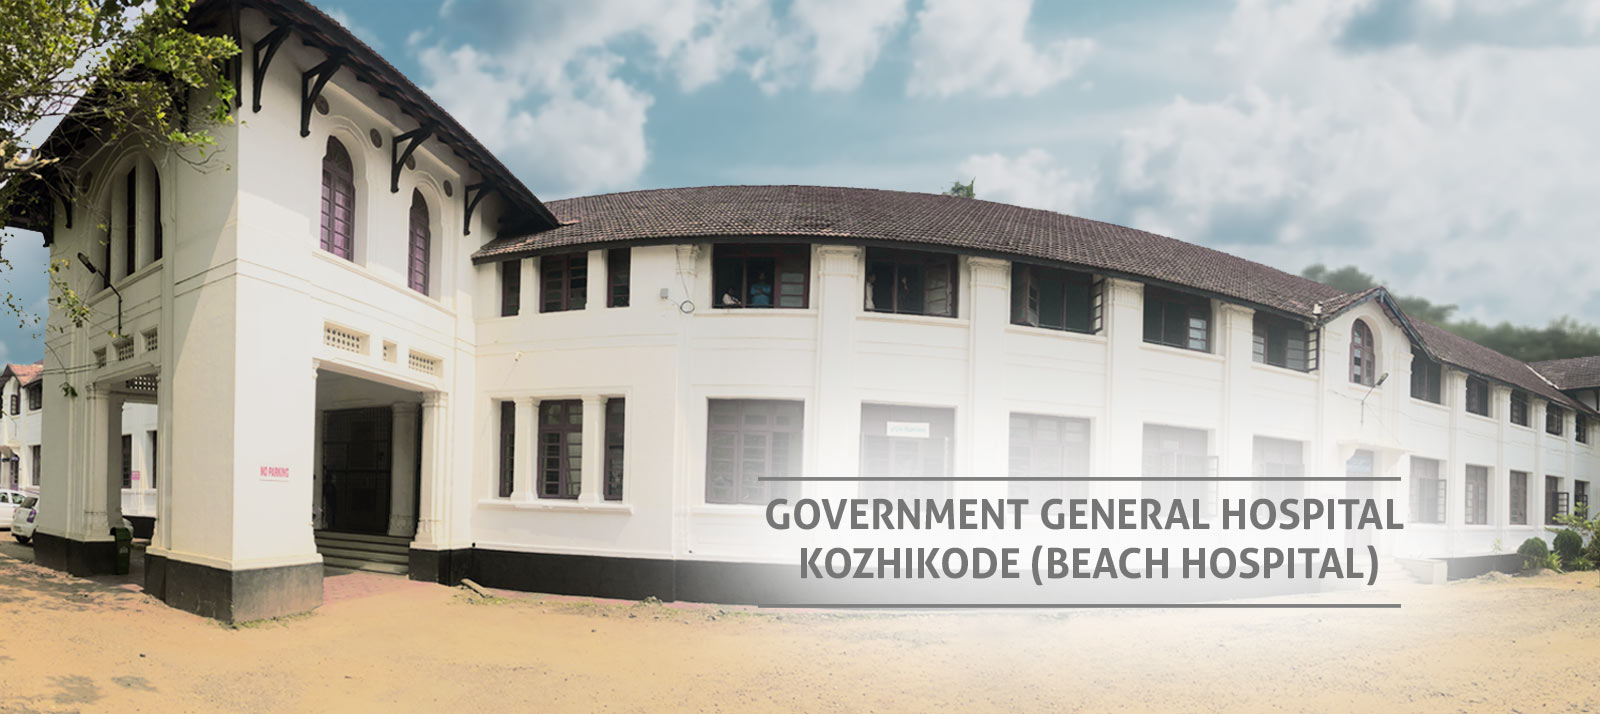 GOVERNMENT GENERAL HOSPITAL KOZHIKODE (BEACH HOSPITAL)